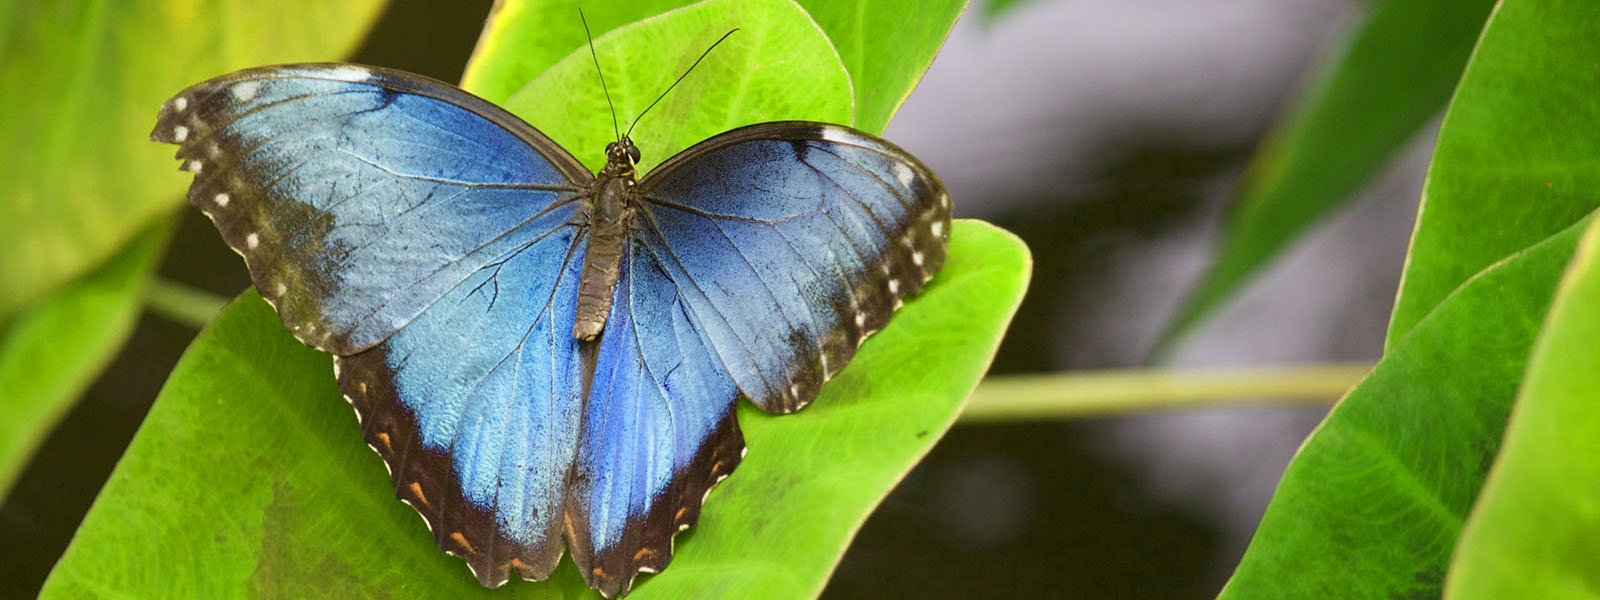 photo of a morpho butterfly resting on a leave